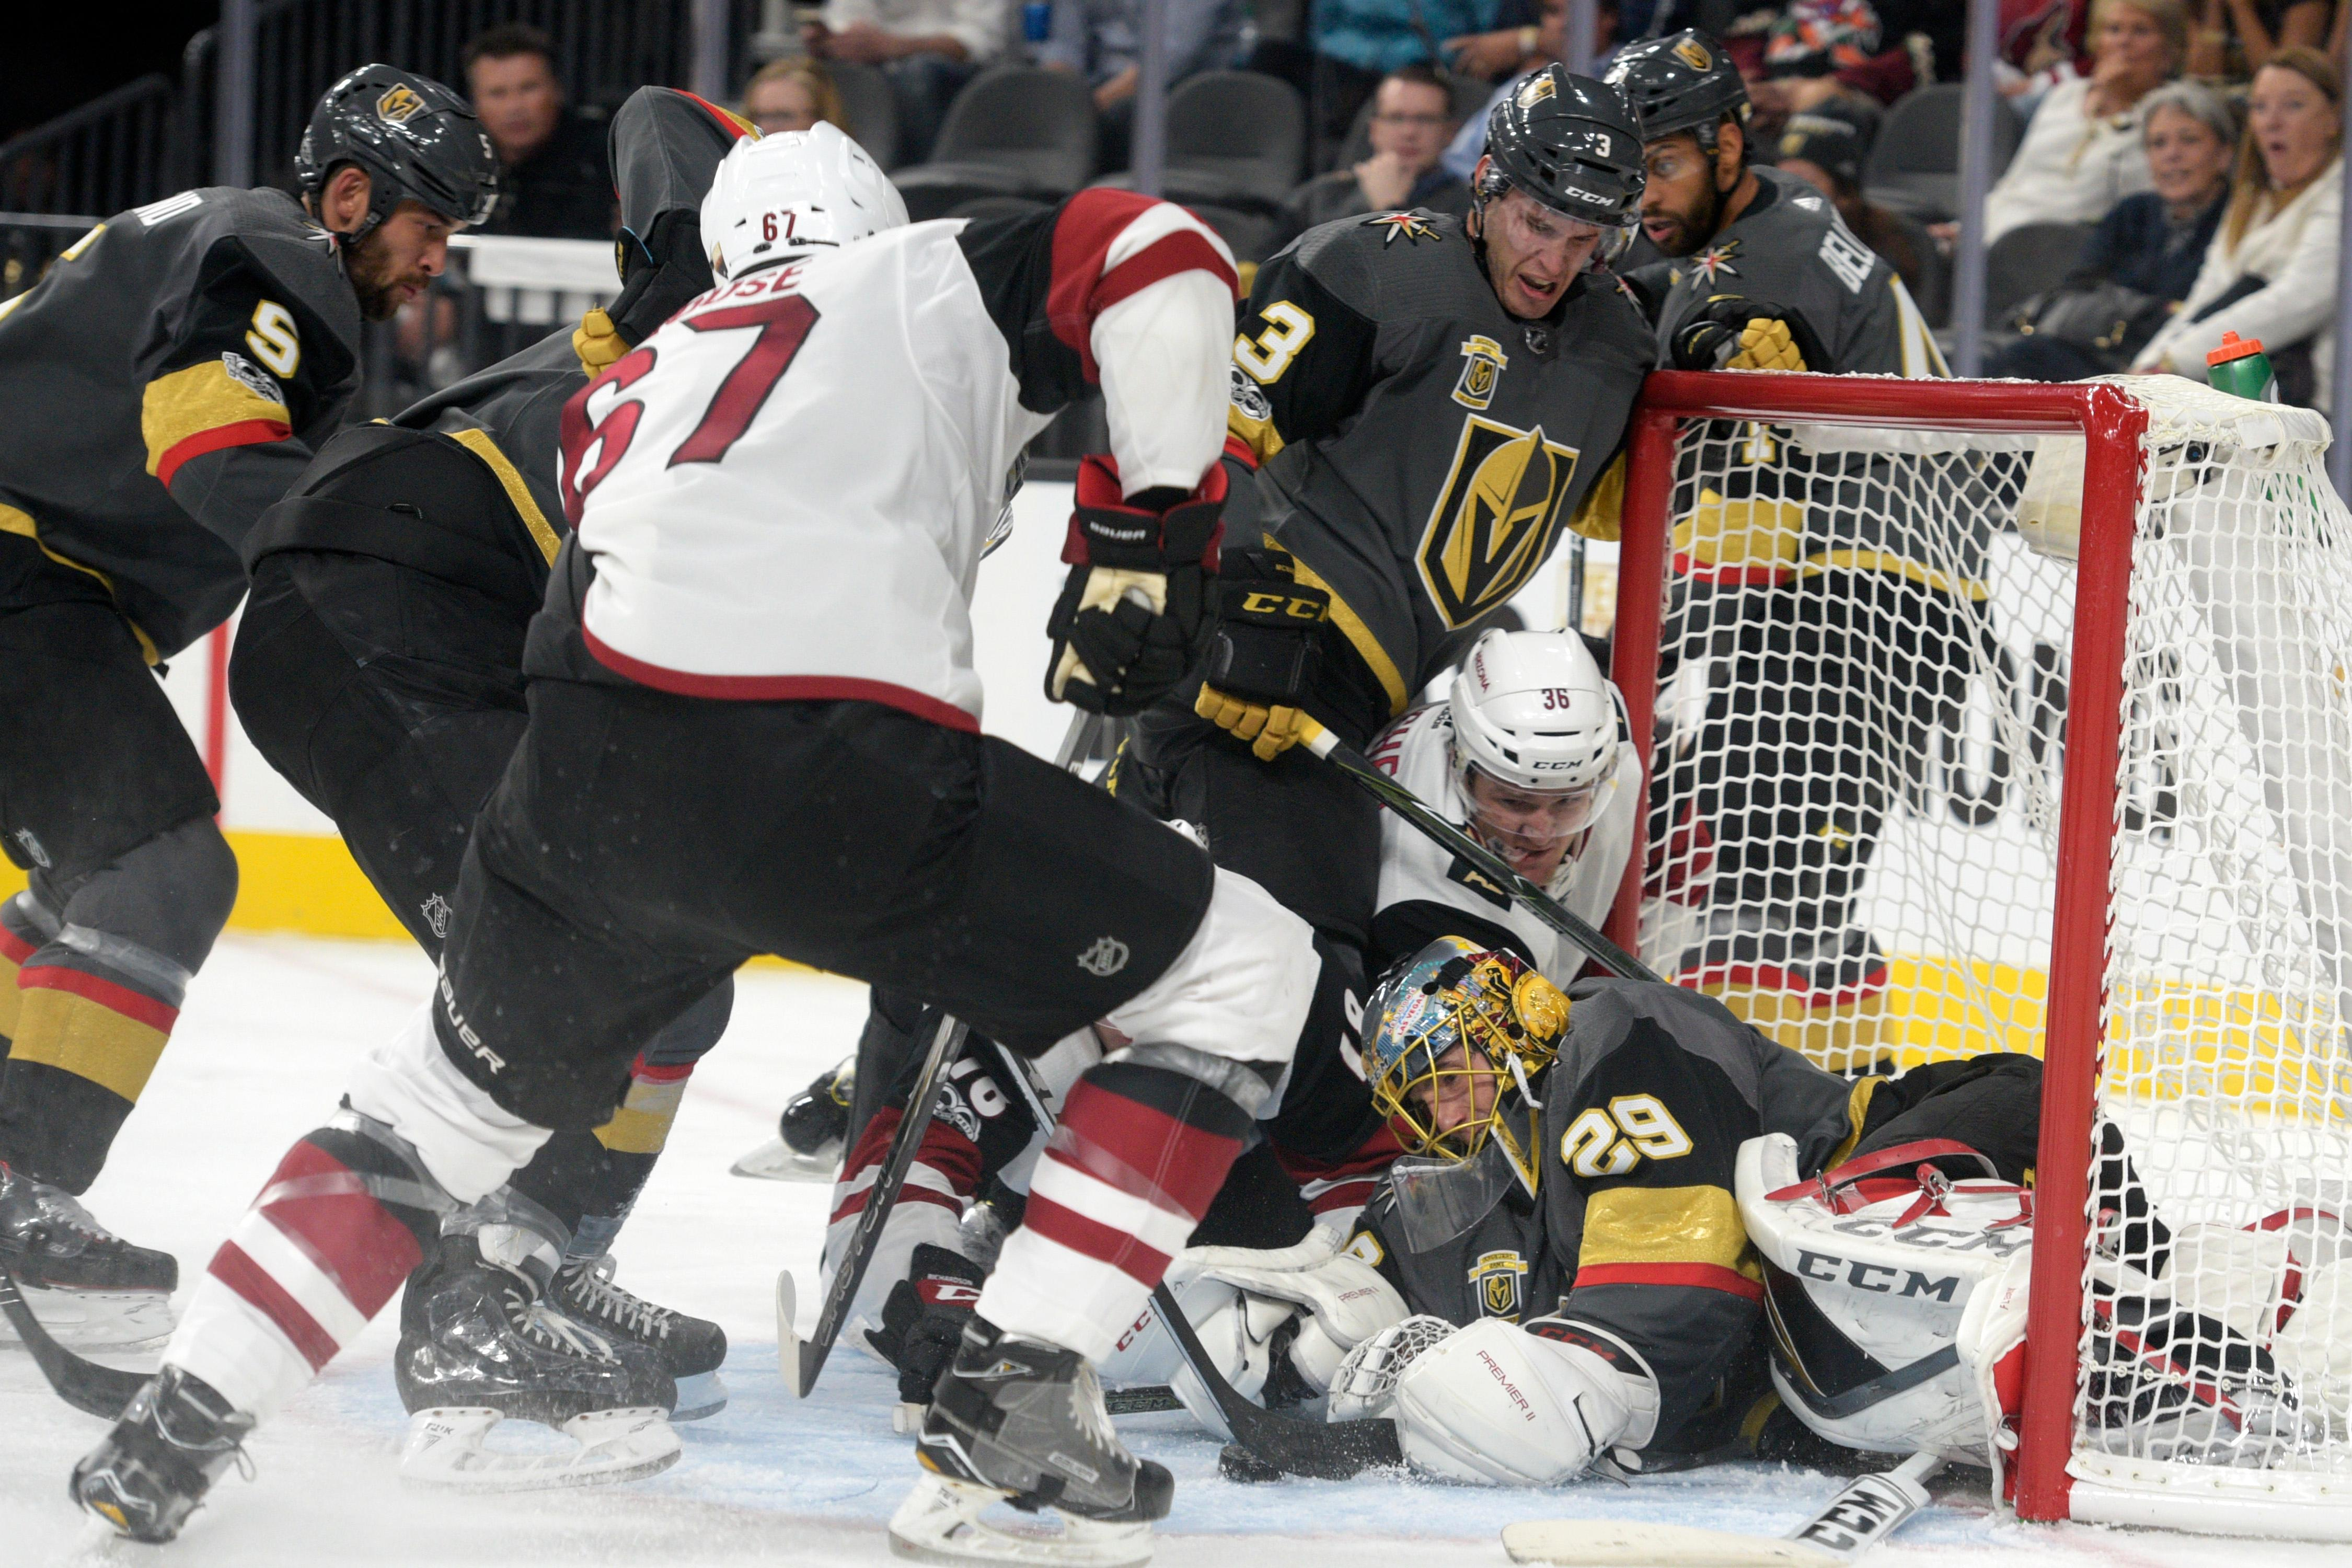 Vegas Golden Knights goalie Marc-Andre Fleury (29) gets shoved into his net while making a save against the Arizona Coyotes during the Knights home opener Tuesday, Oct. 10, 2017, at the T-Mobile Arena. The Knights won 5-2 to extend their winning streak to 3-0. CREDIT: Sam Morris/Las Vegas News Bureau